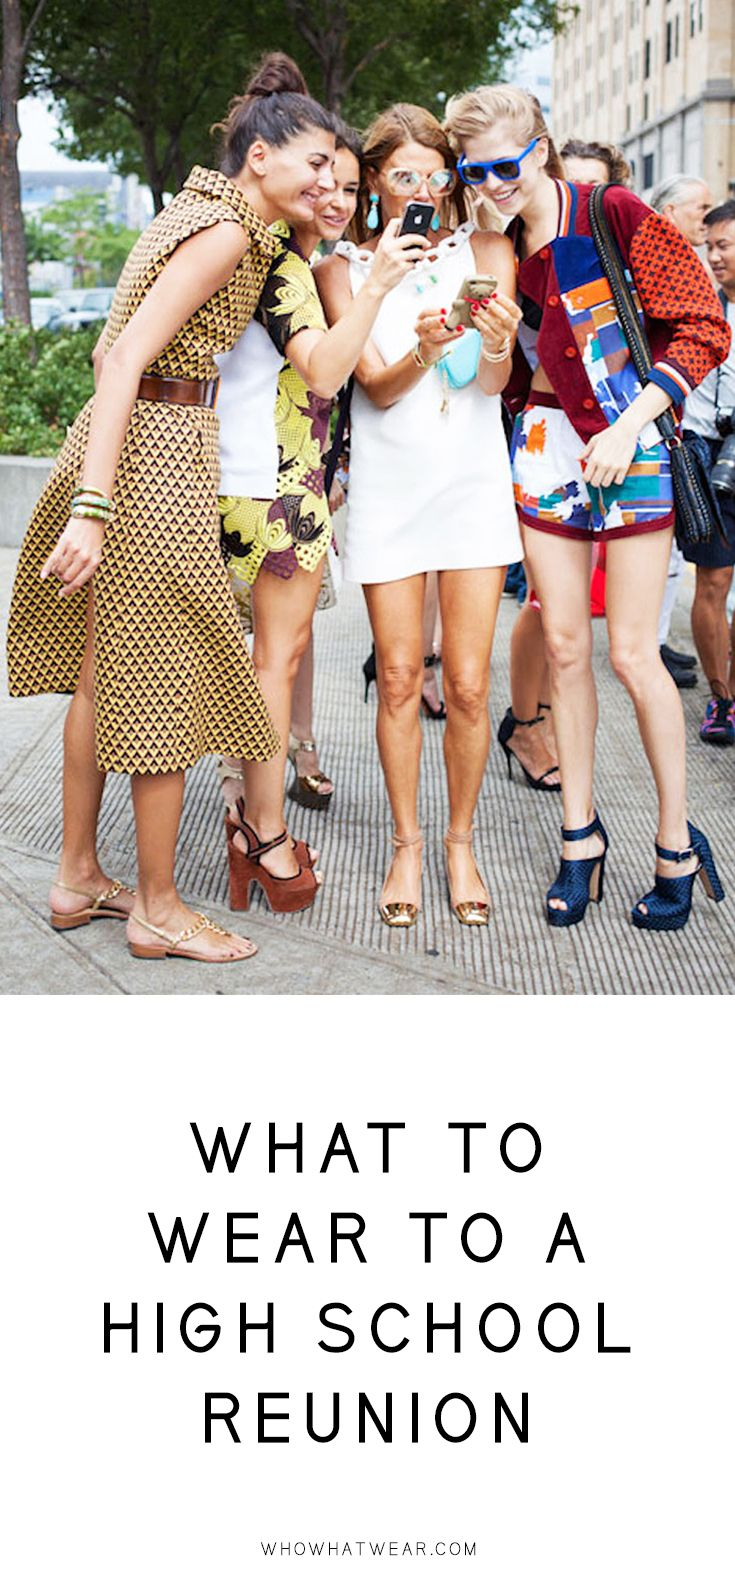 High school reunion coming up? Here are foolproof outfit ideas to ease your stress